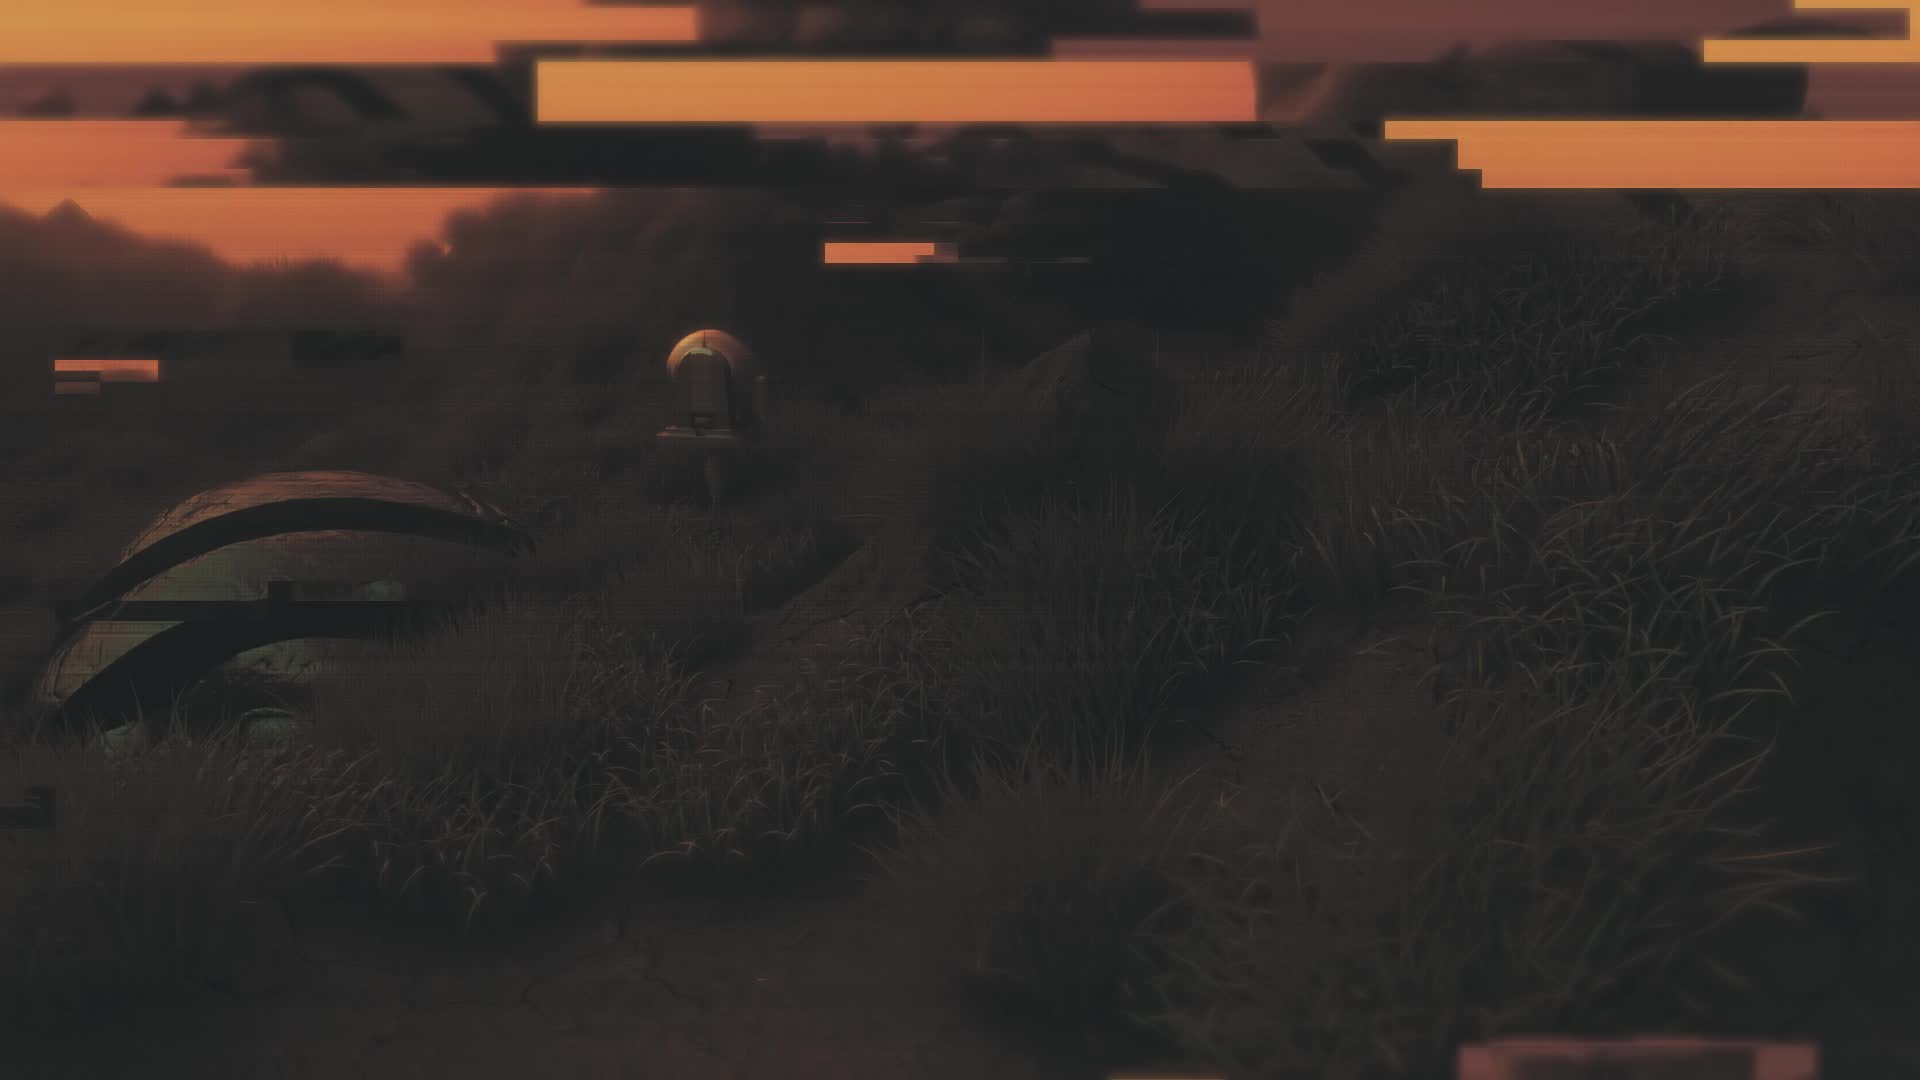 abstract, alien, android, london, losangeles, lost, mars, newyork, planet, scifi, unknown, Lost GIFs